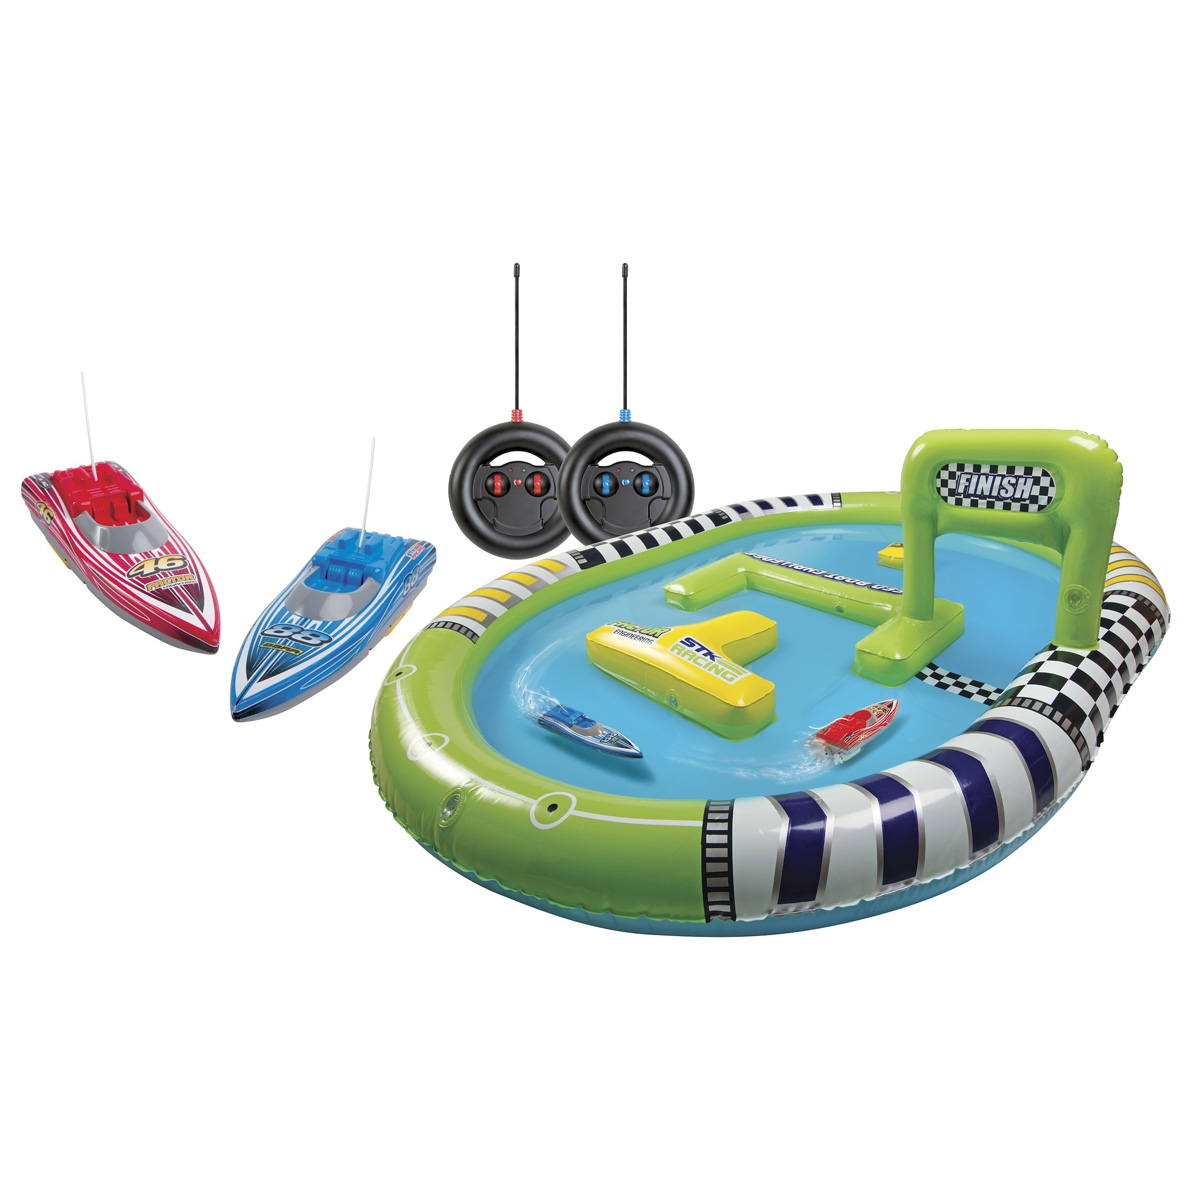 remote control boat for pool with Inflatable Rc Speedboat Water Raceway on 10 Of The Most Expensive Limousines In The World as well 16889034 also BSOD 10 Pack 10W LED Underwater Pond Light 12V Waterproof IP68 White Warm Red Green Blue also Sonesta Nile Goddess Nile Cruises further Story.